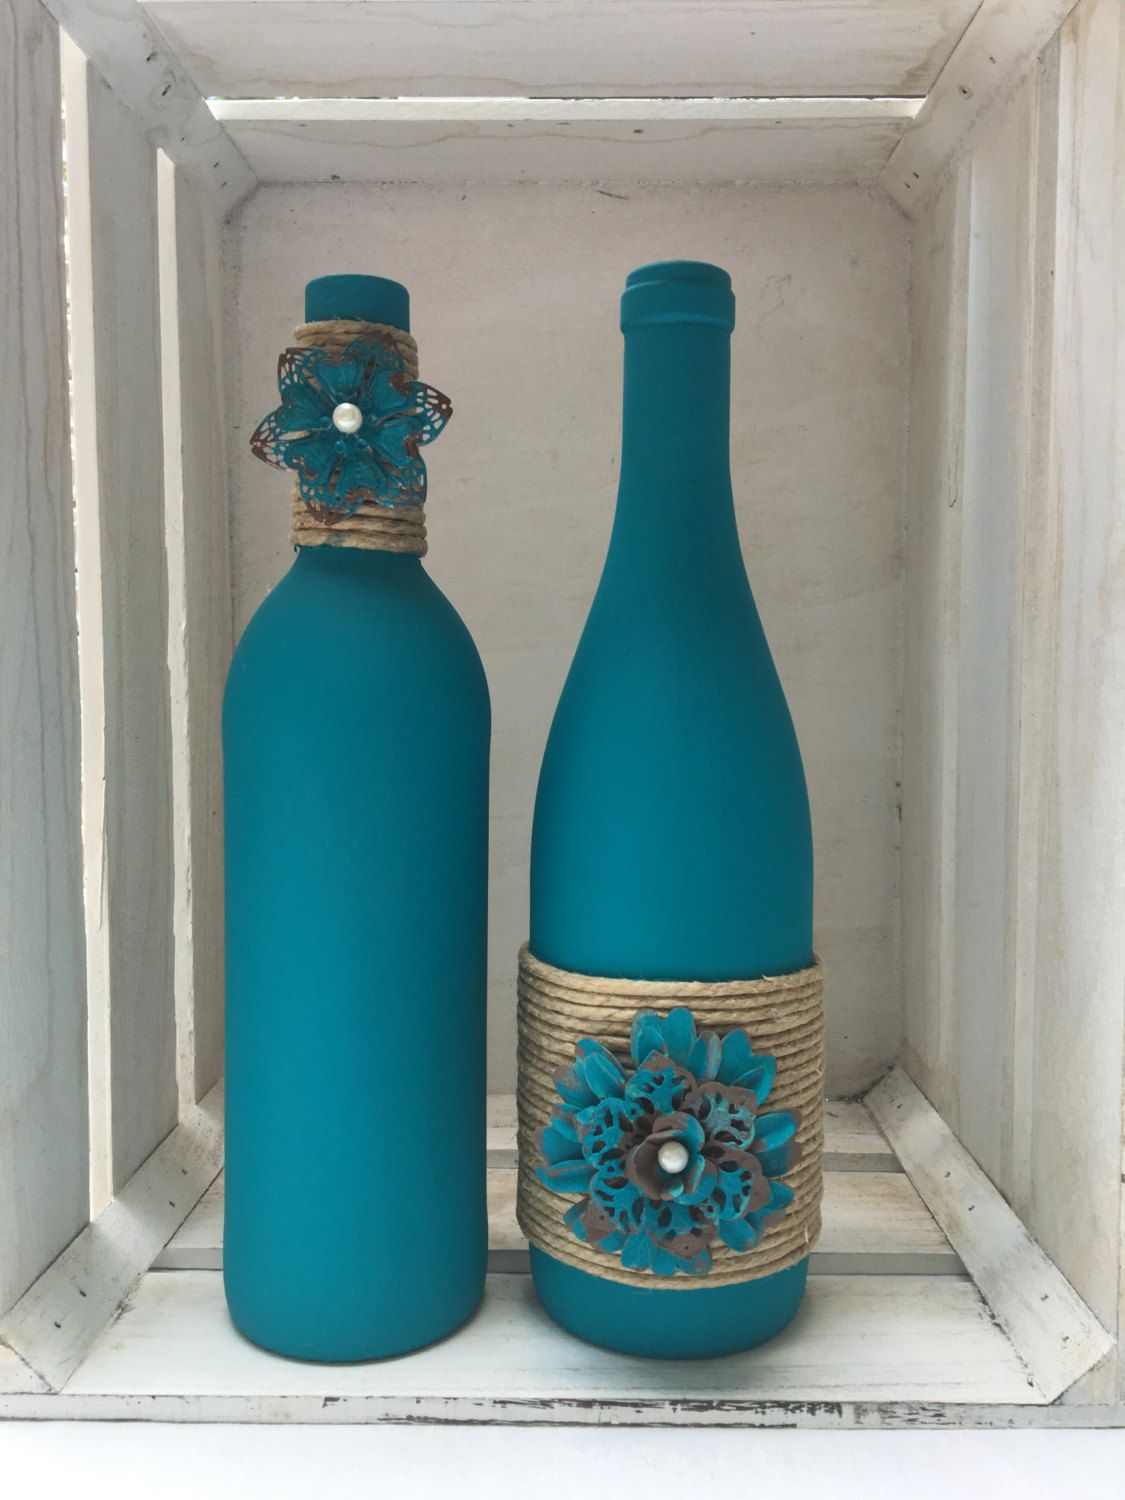 Teal chalk painted wine bottles with twine